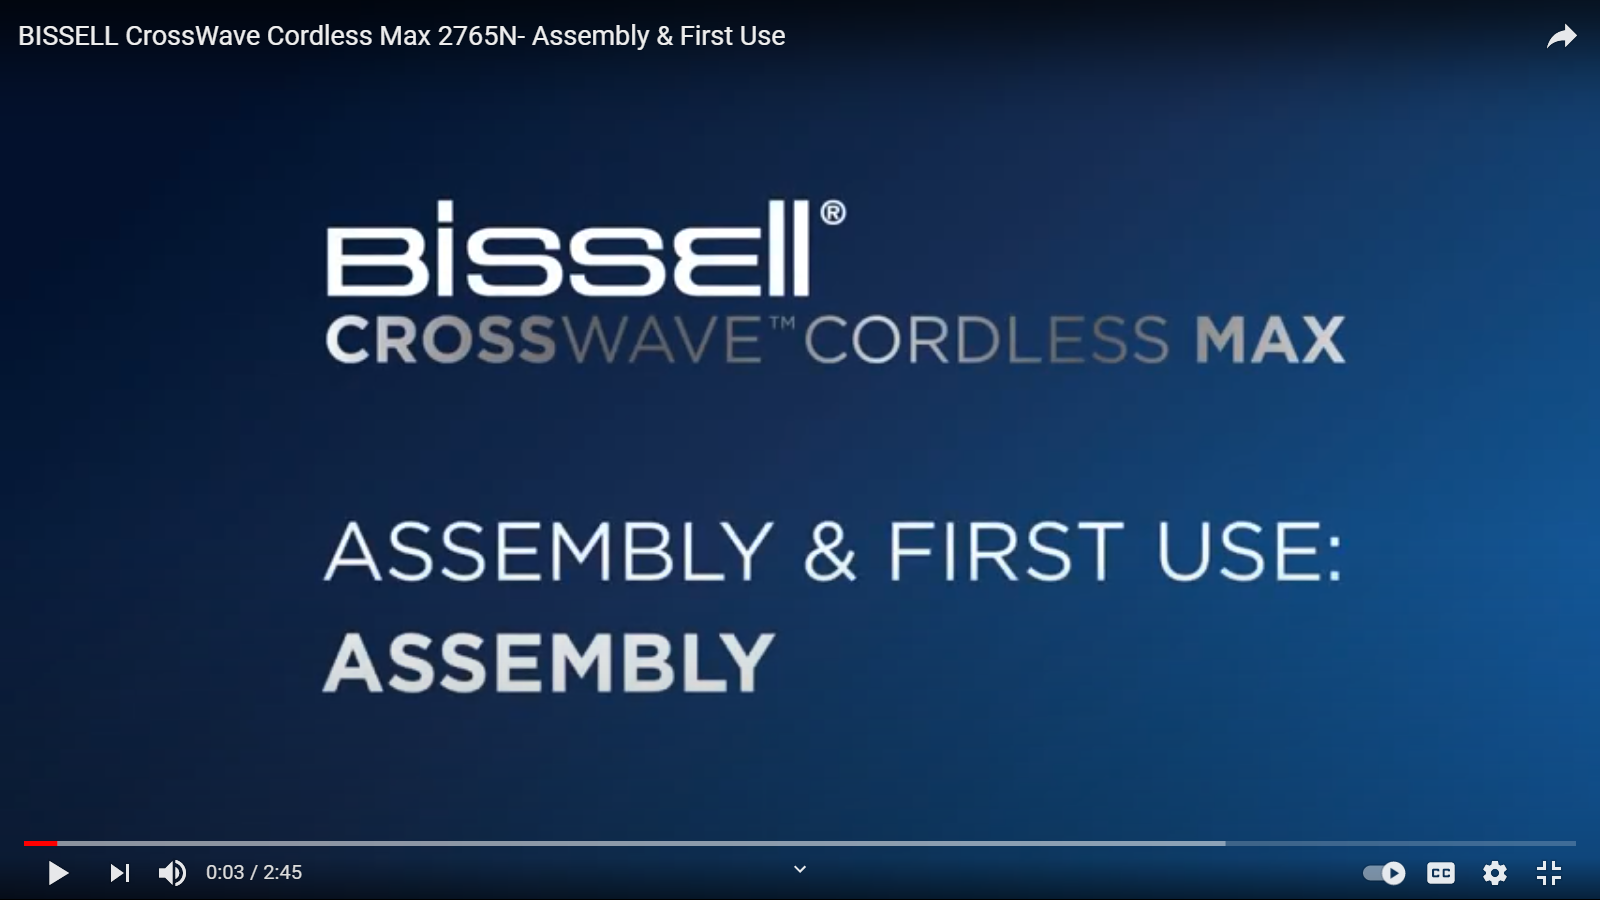 How to assemble and use for the first time your CrossWave Cordless Max